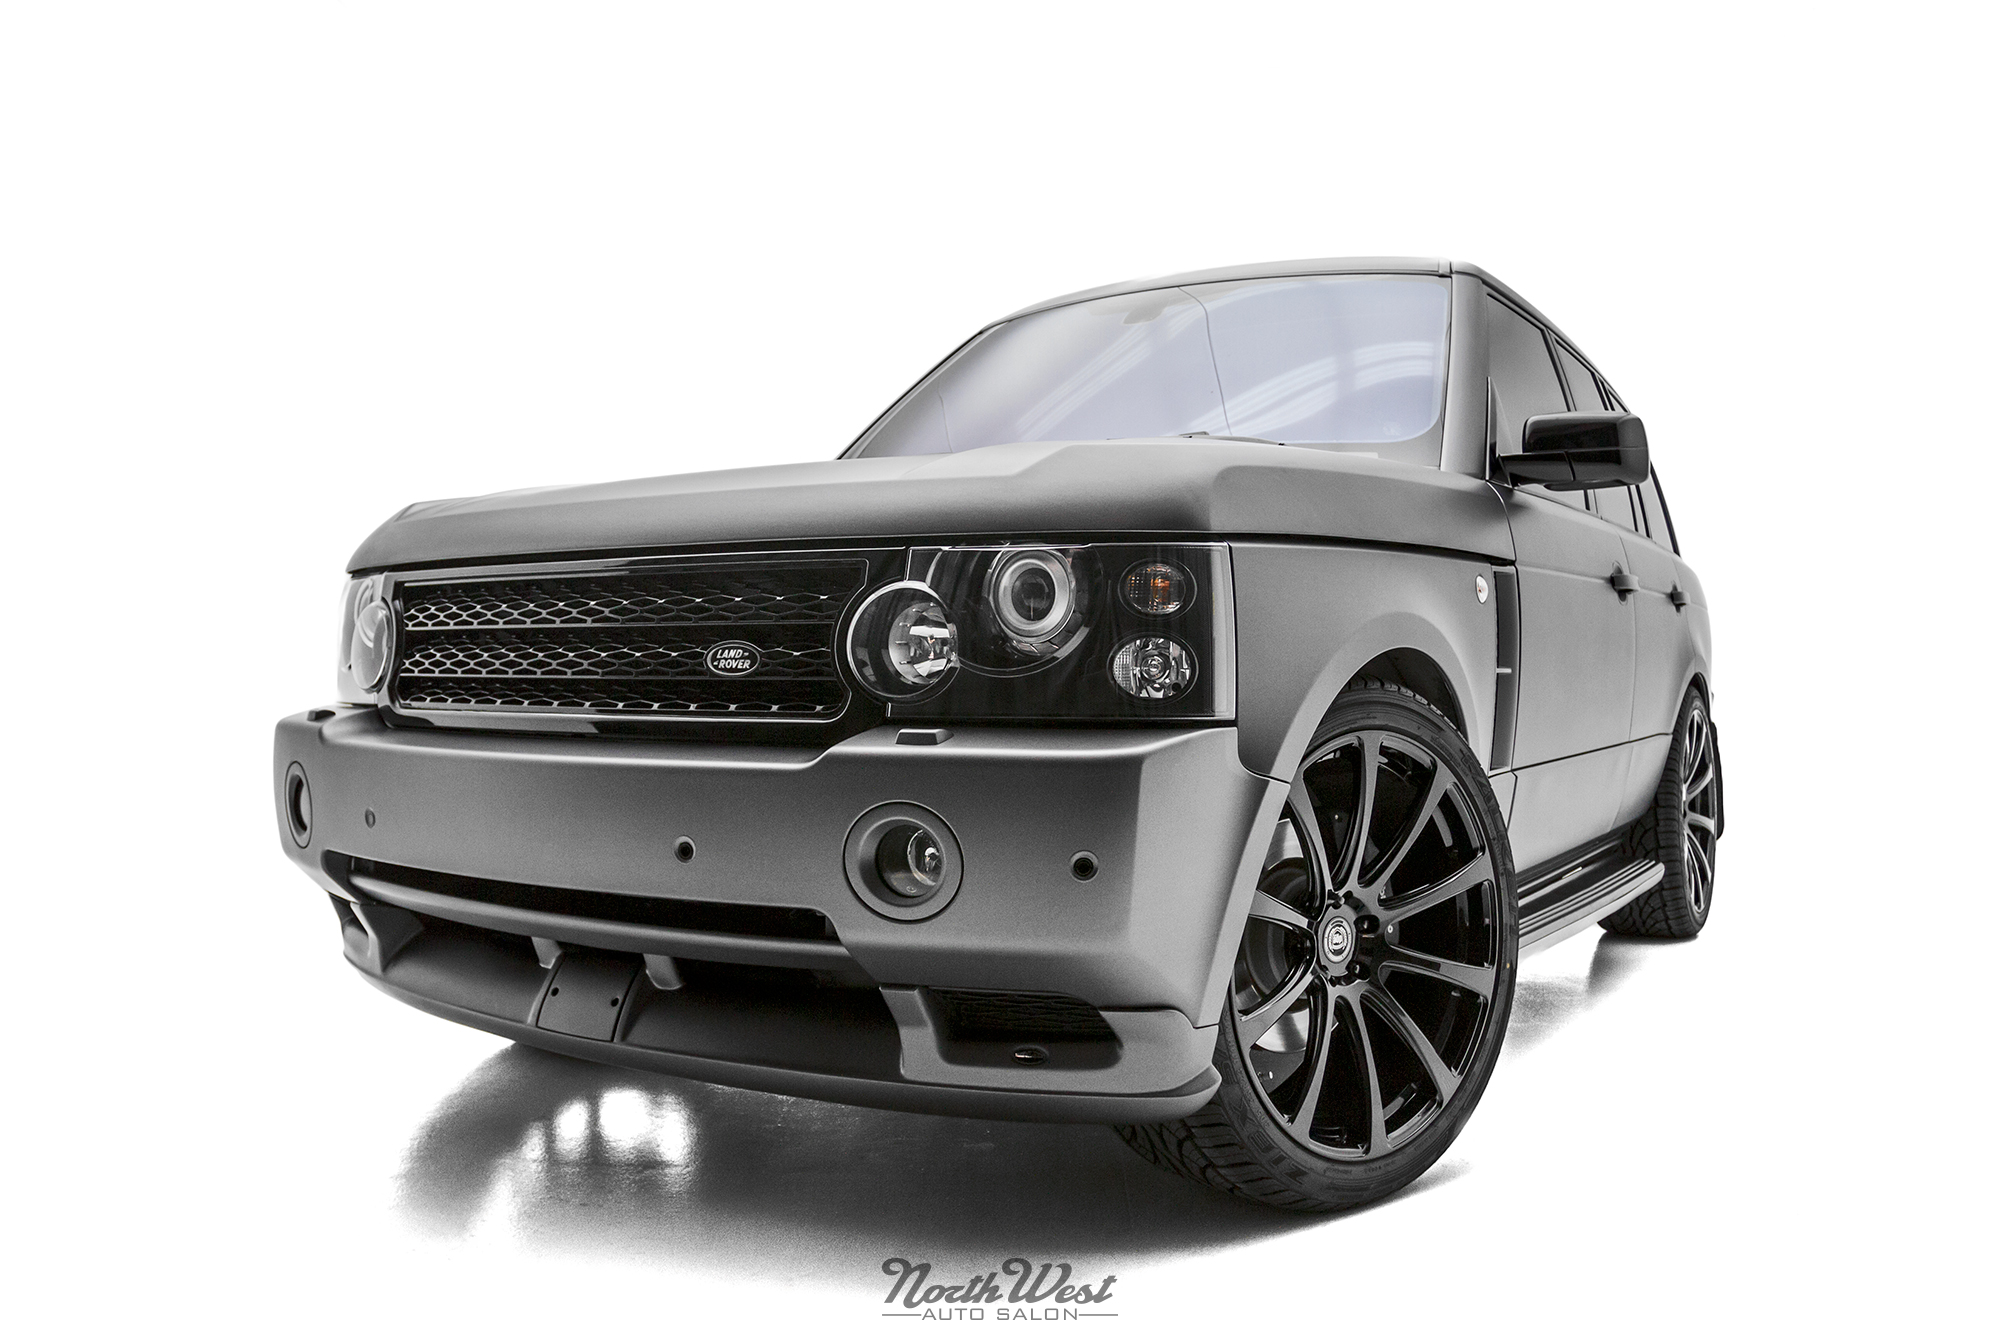 Range Rover HSE Matte Metallic vehicle wrap with DPE Wheels and Overfinch bodykit